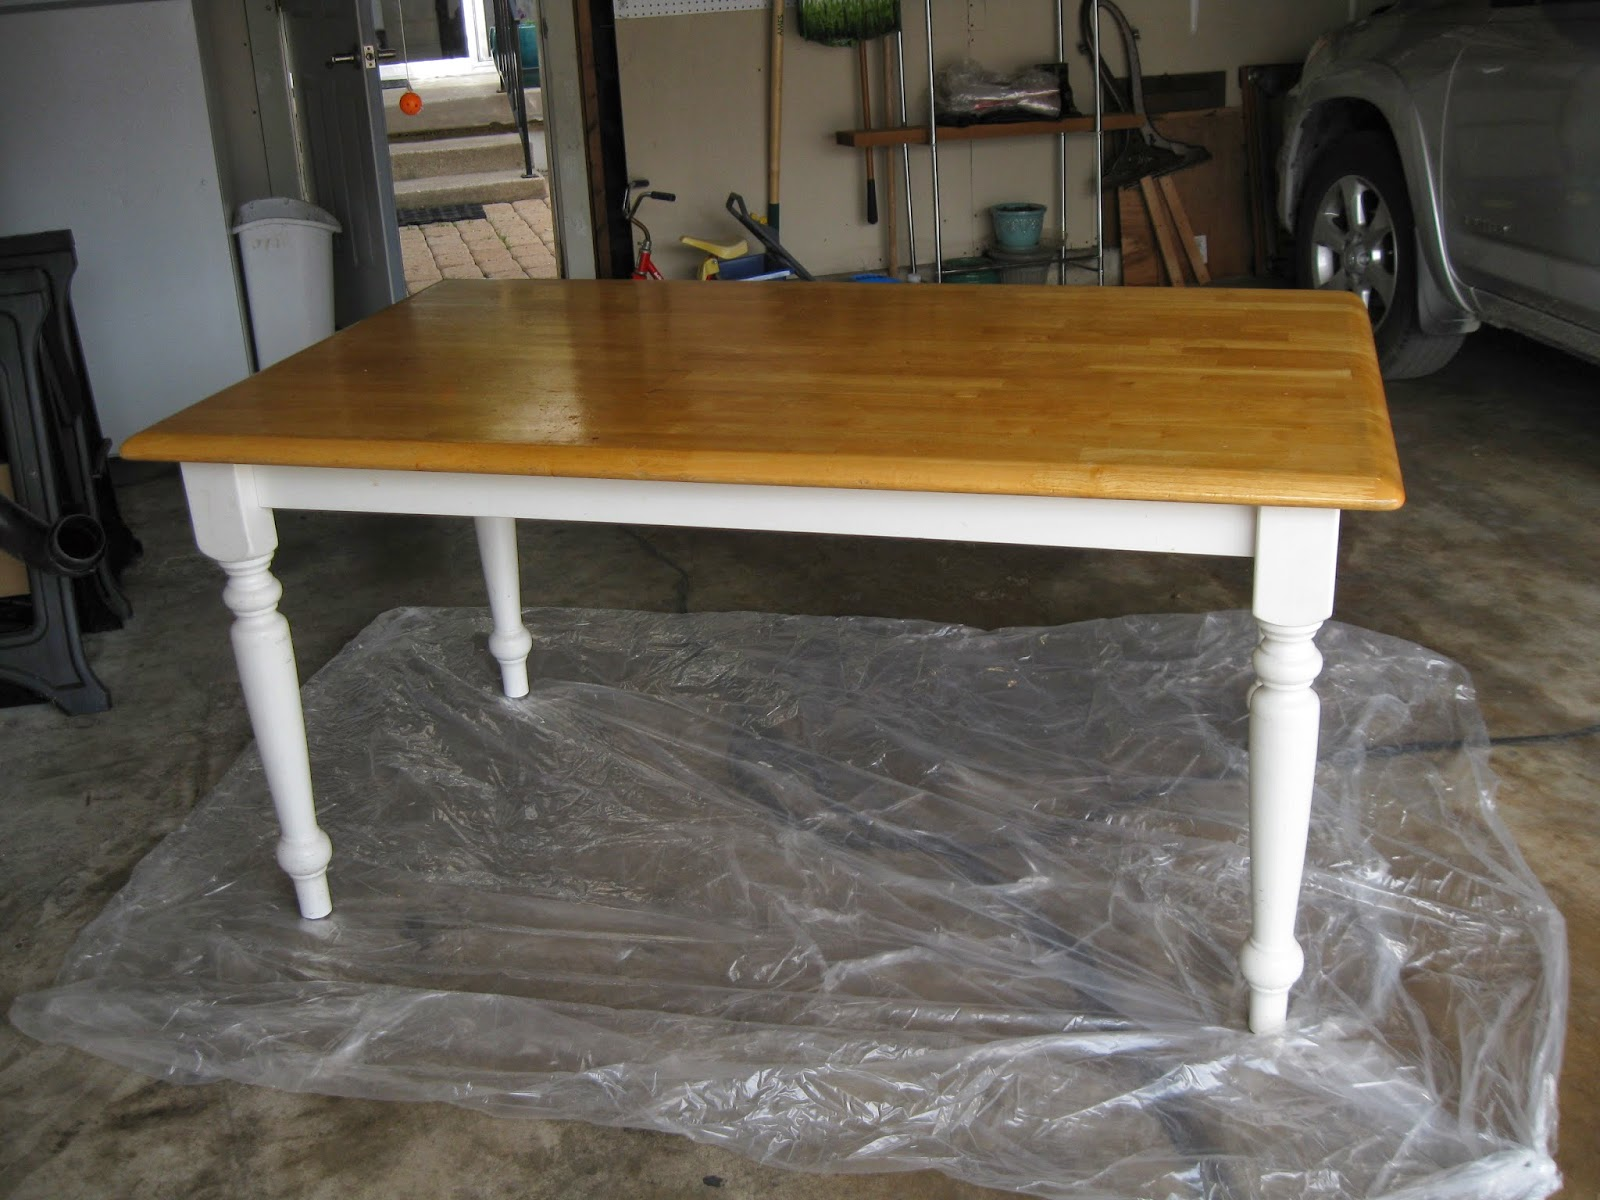 Beau How To Turn An Ugly, Generic Kitchen Table Into A Farmhouse Table: Part 1